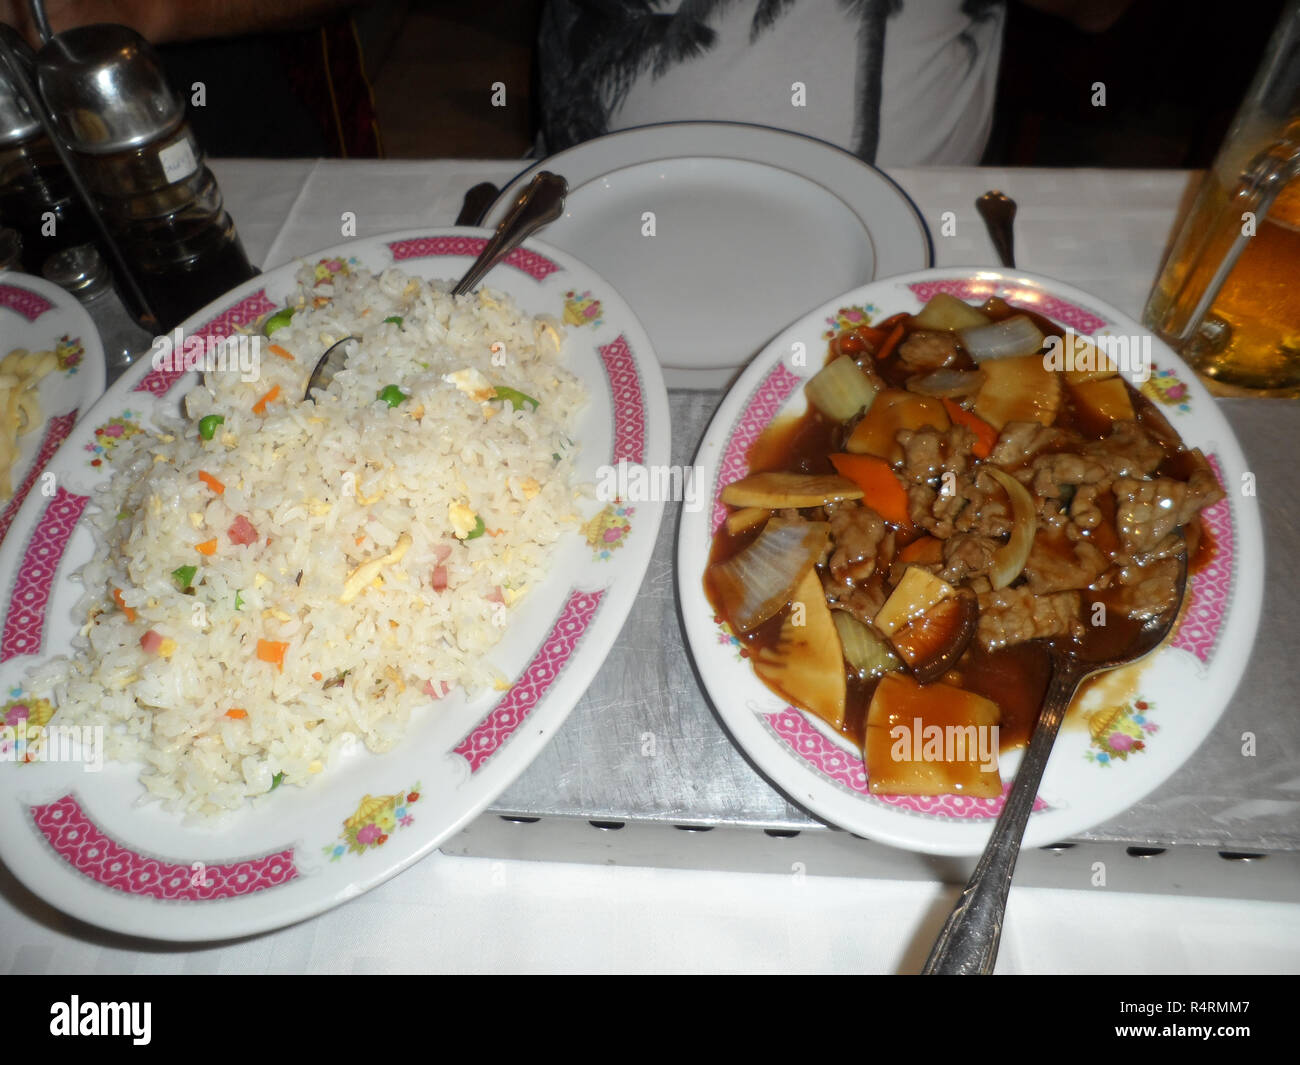 Chinese restaurant main course dish of Egg fried rice with Beef and vegetable in Black bean sauce - Stock Image